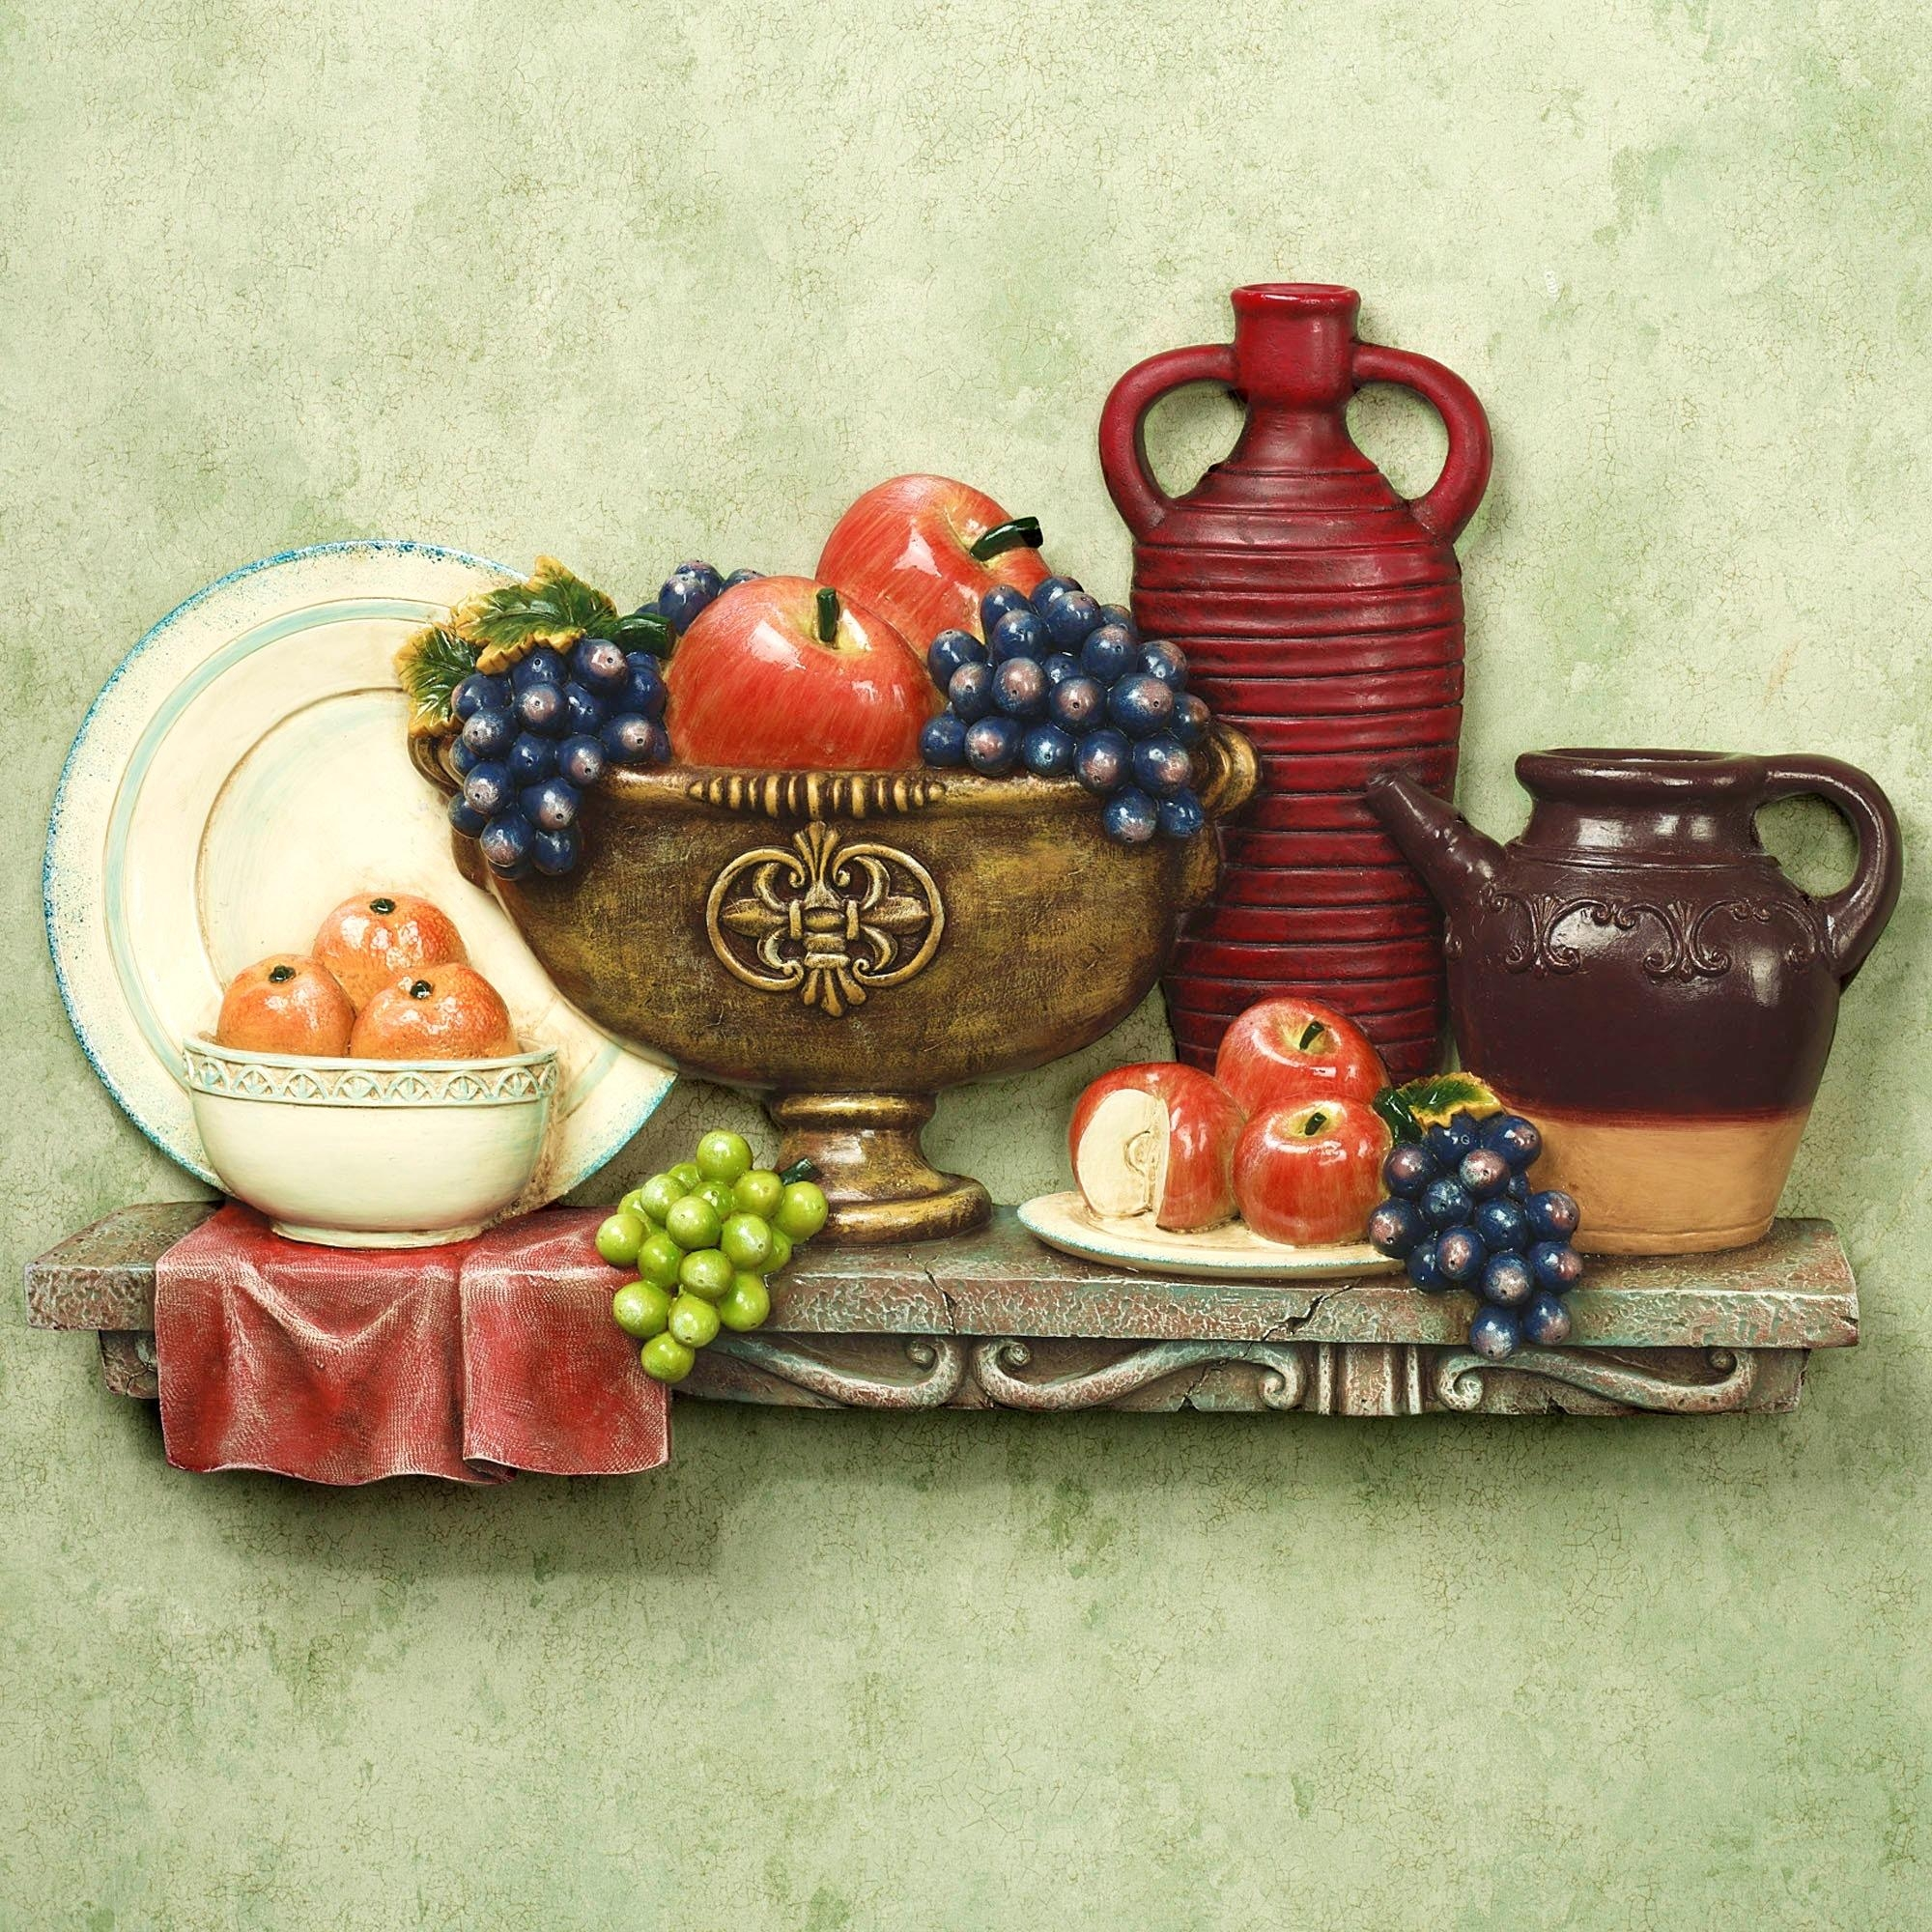 Cool Kitchen Signs: 2018 Latest Italian Wall Art For The Kitchen